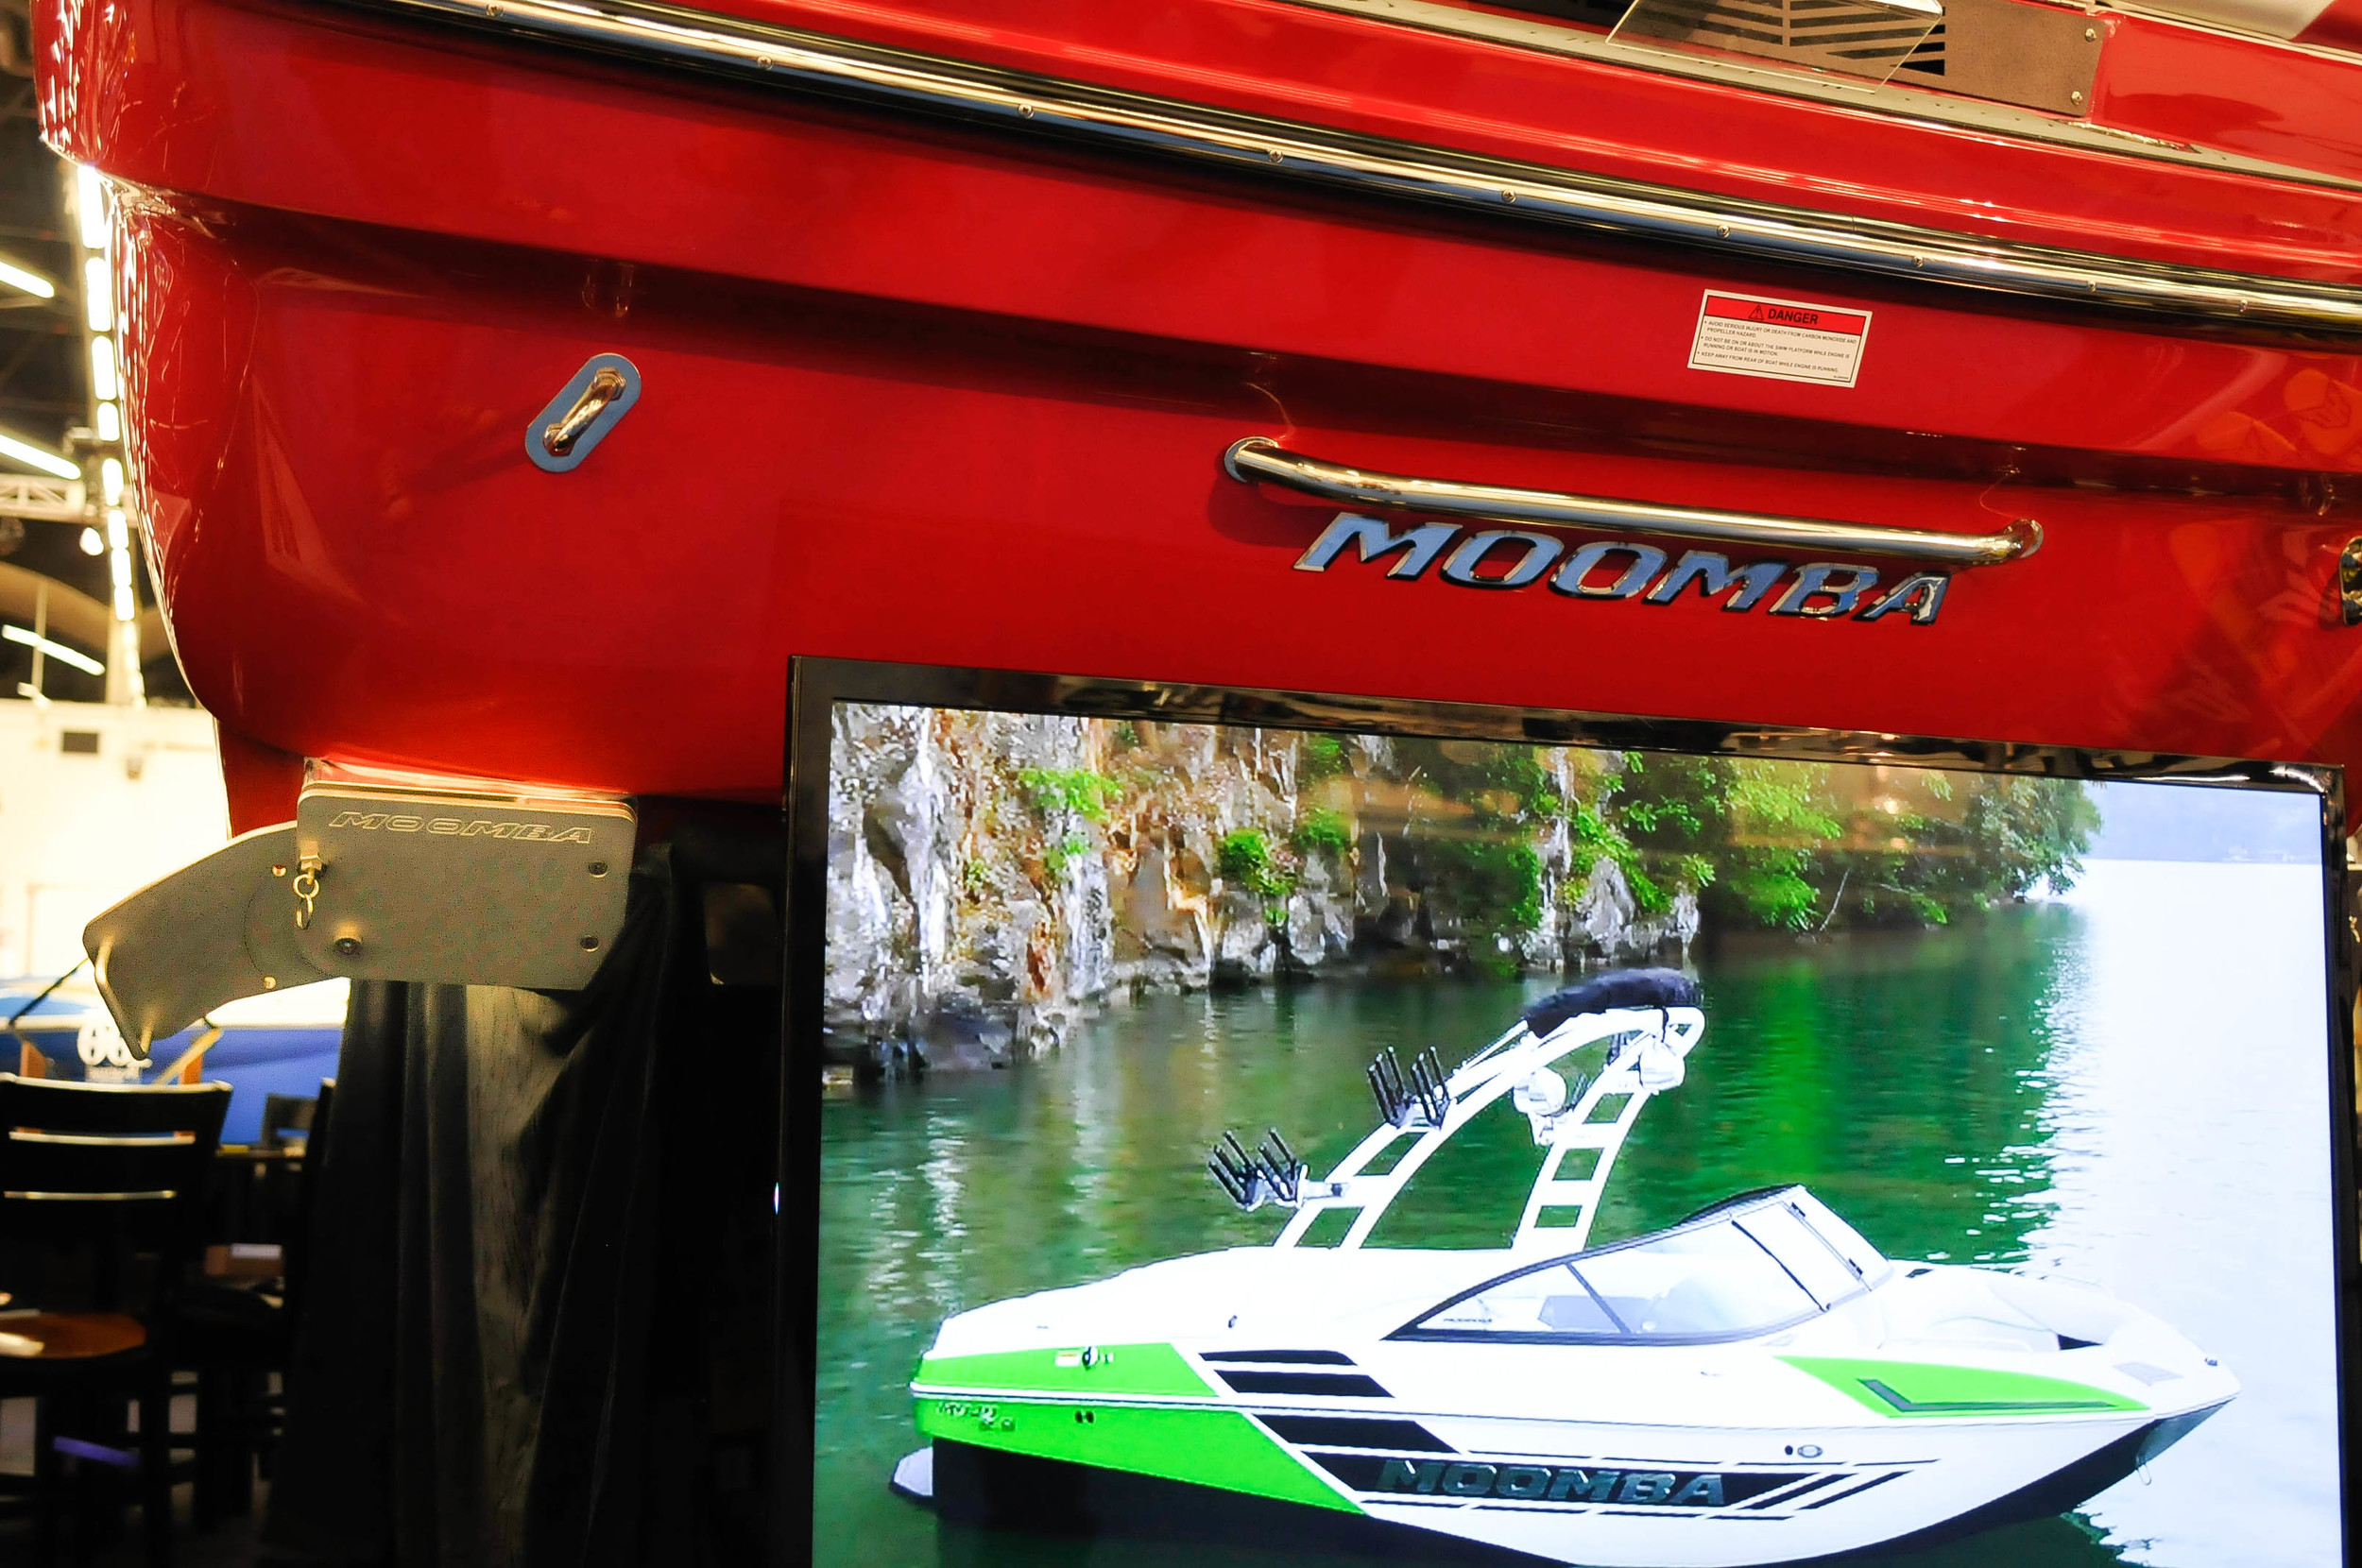 Moomba Flow Surf System